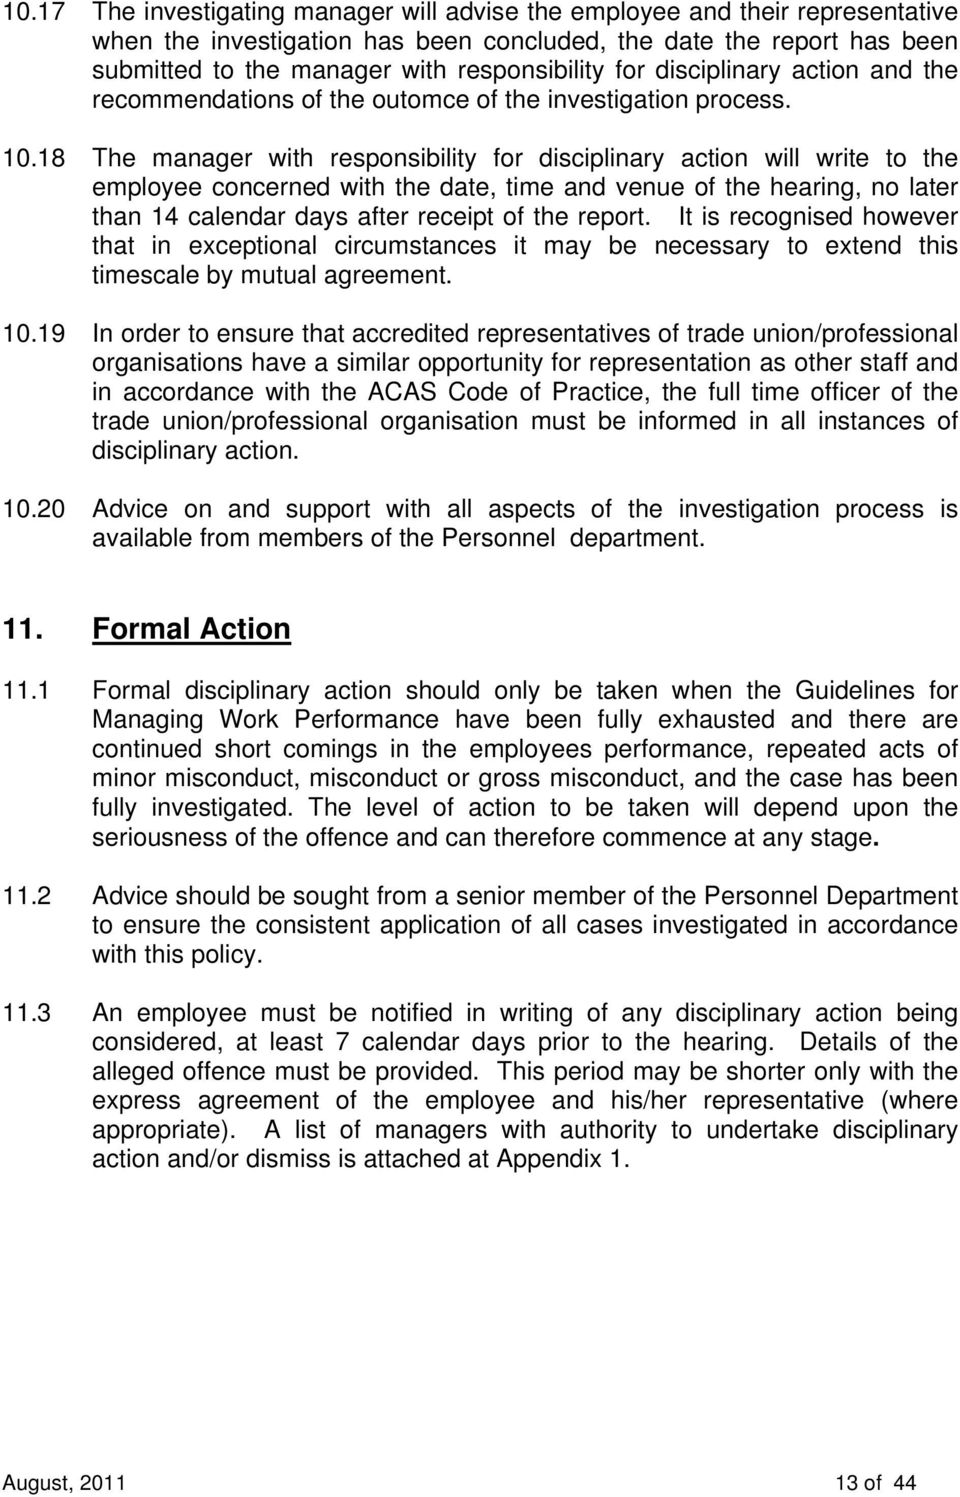 18 The manager with responsibility for disciplinary action will write to the employee concerned with the date, time and venue of the hearing, no later than 14 calendar days after receipt of the